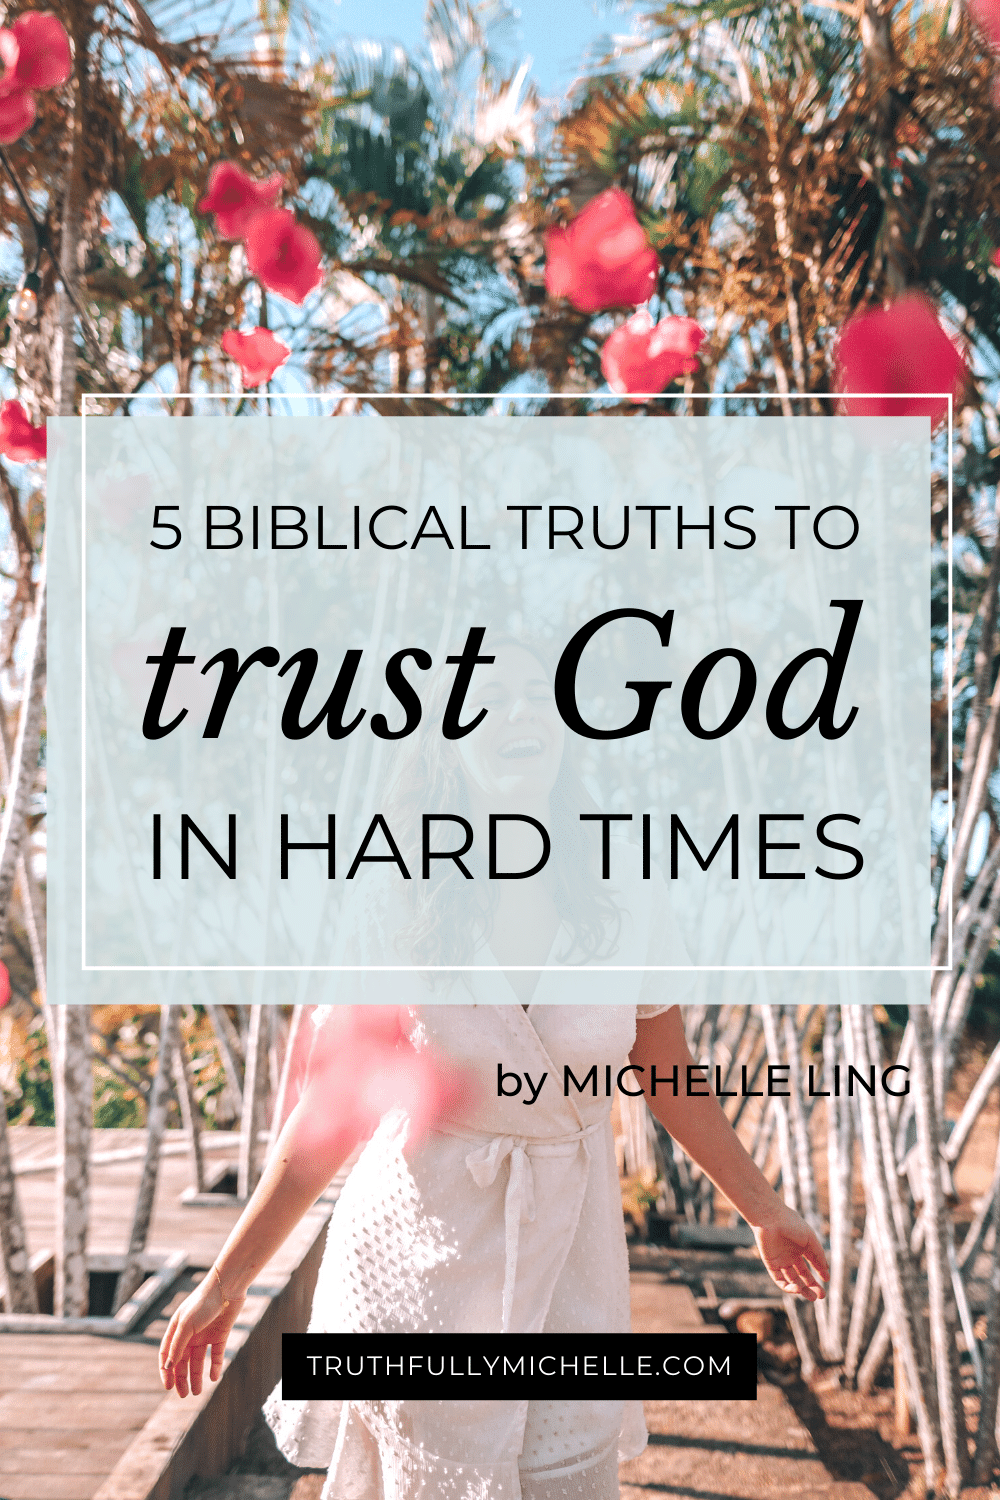 Biblical truths for women, biblical encouragement for girls, biblical encouragement woman, God's truths for women, God's promises for women truths, God's promises for women bible studies, trusting God in hard times, how to trust God in hard times, trust God in hard times faith life, trust God in the storm, trusting God in uncertainty, trusting God in the unknown, trust God in the dark